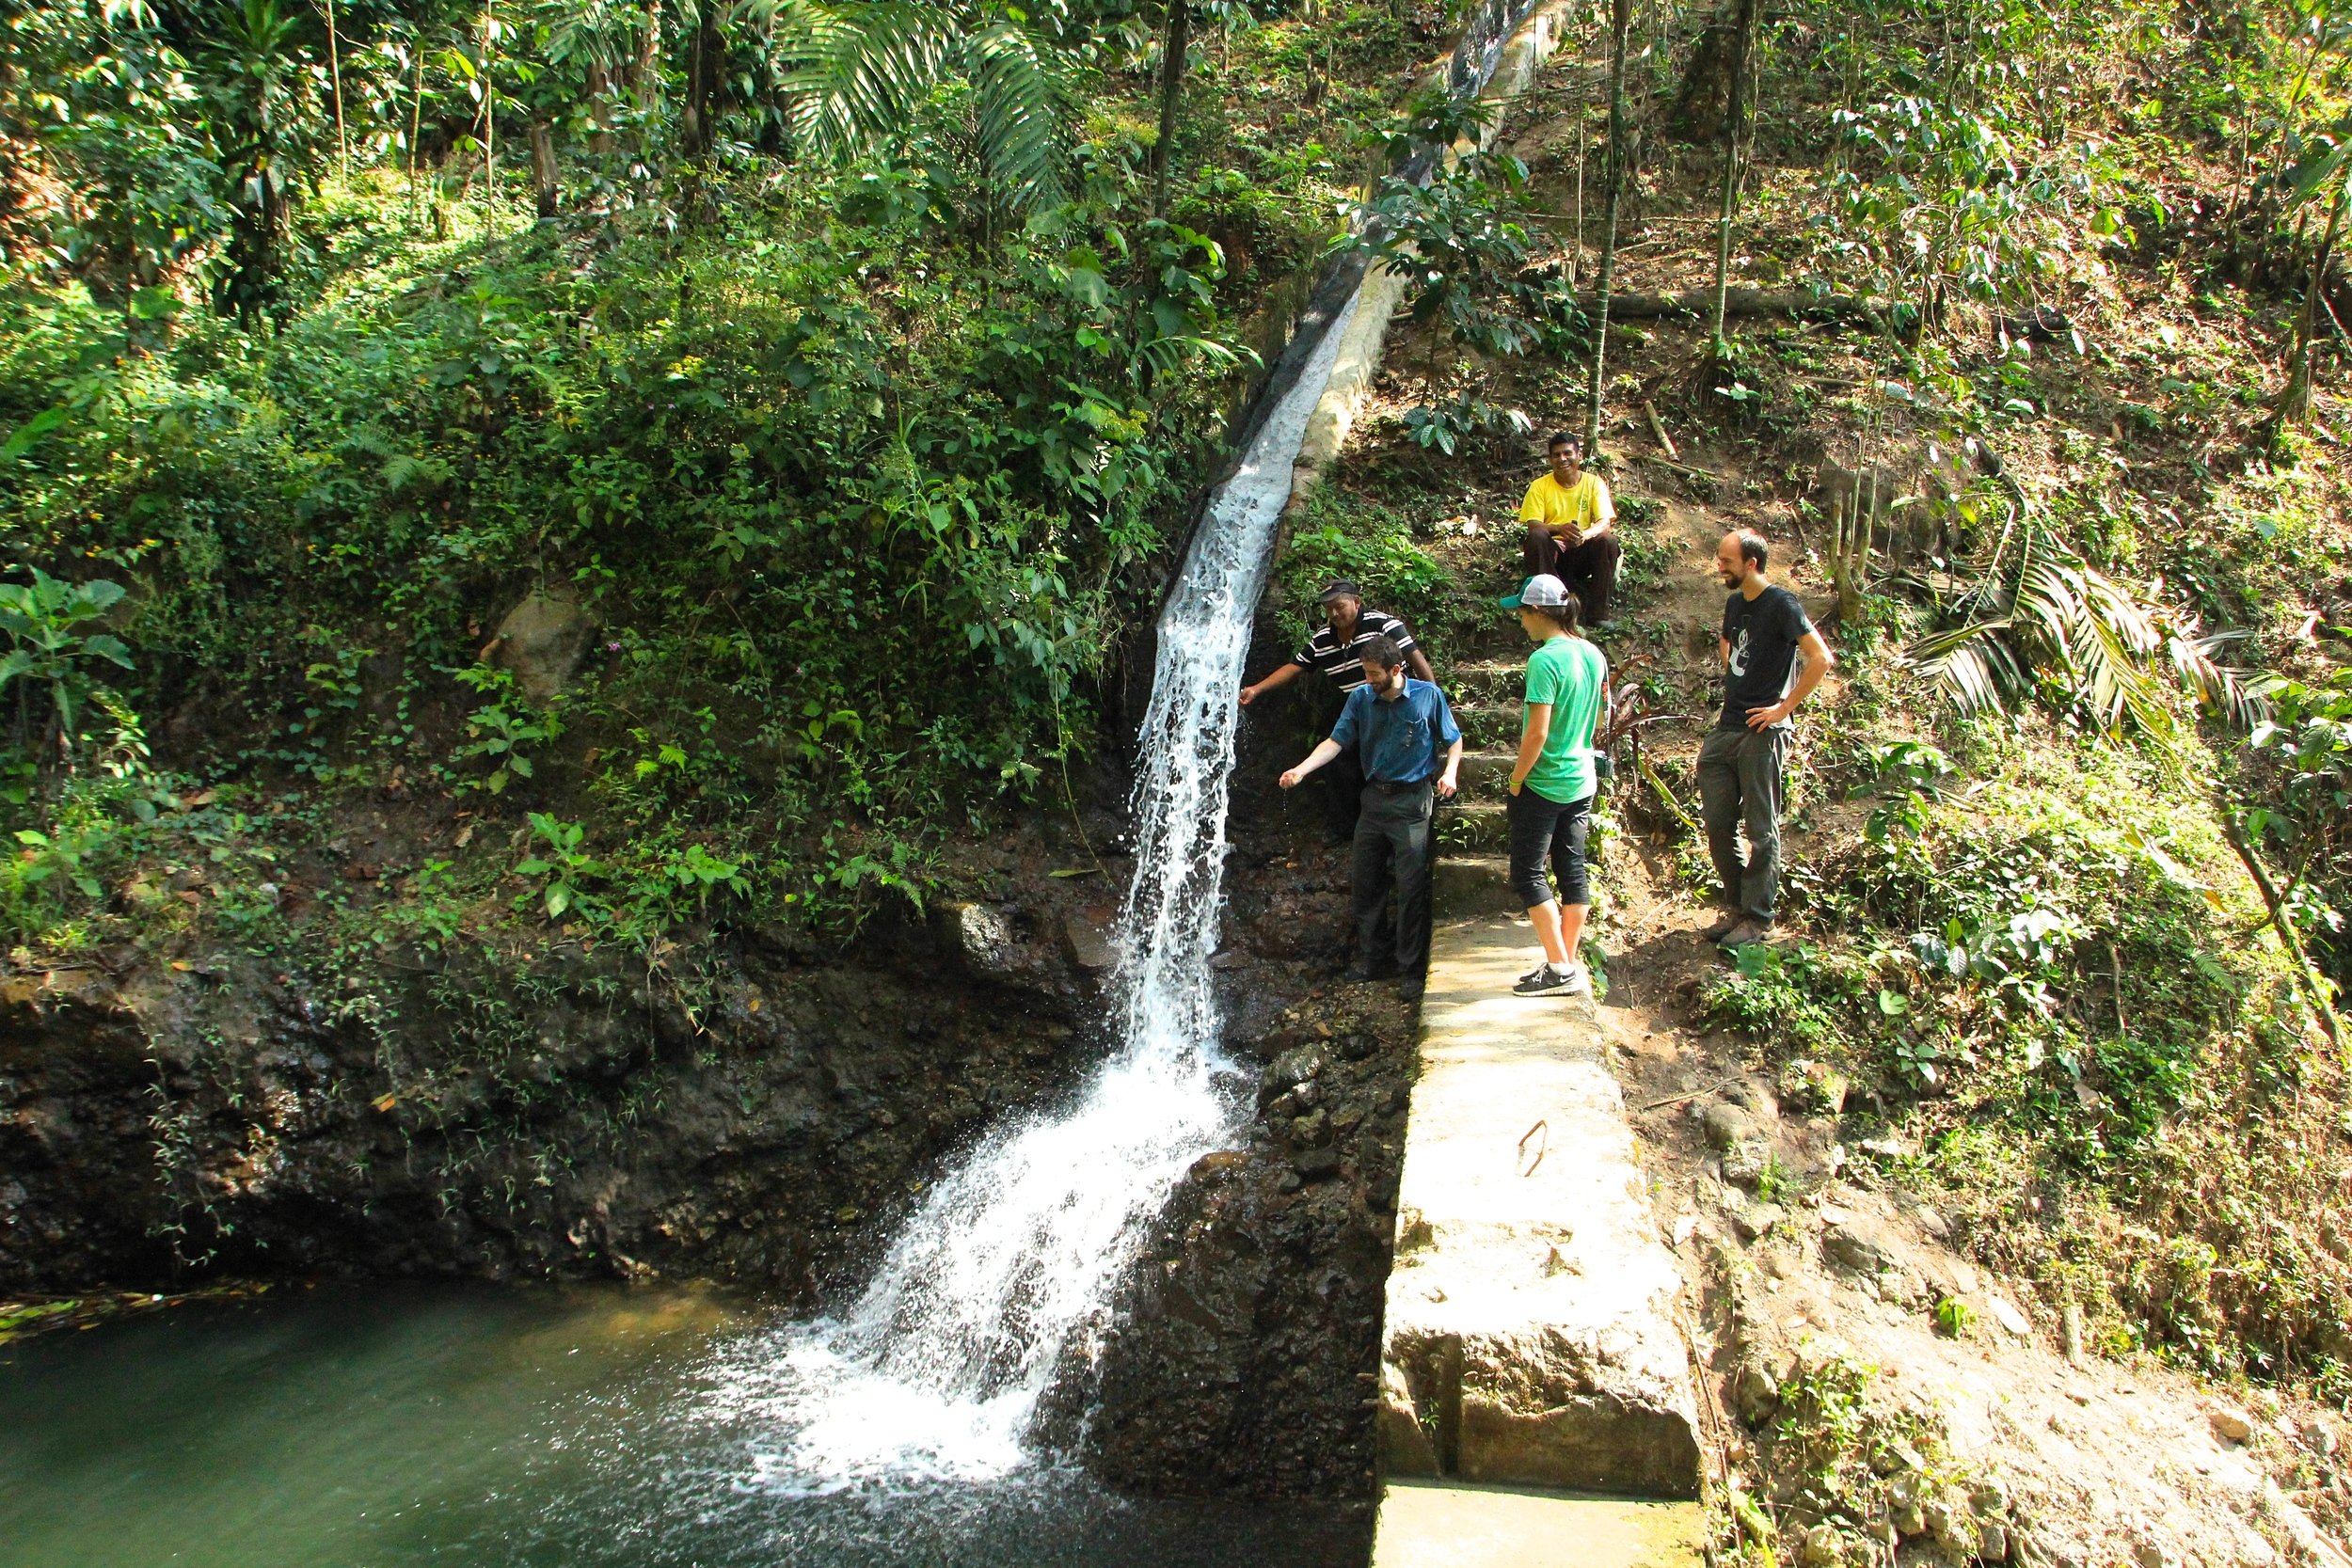 The waterfall fills the natural pool until the dam is opened and the water enters the system of canals and generates energy for the town.